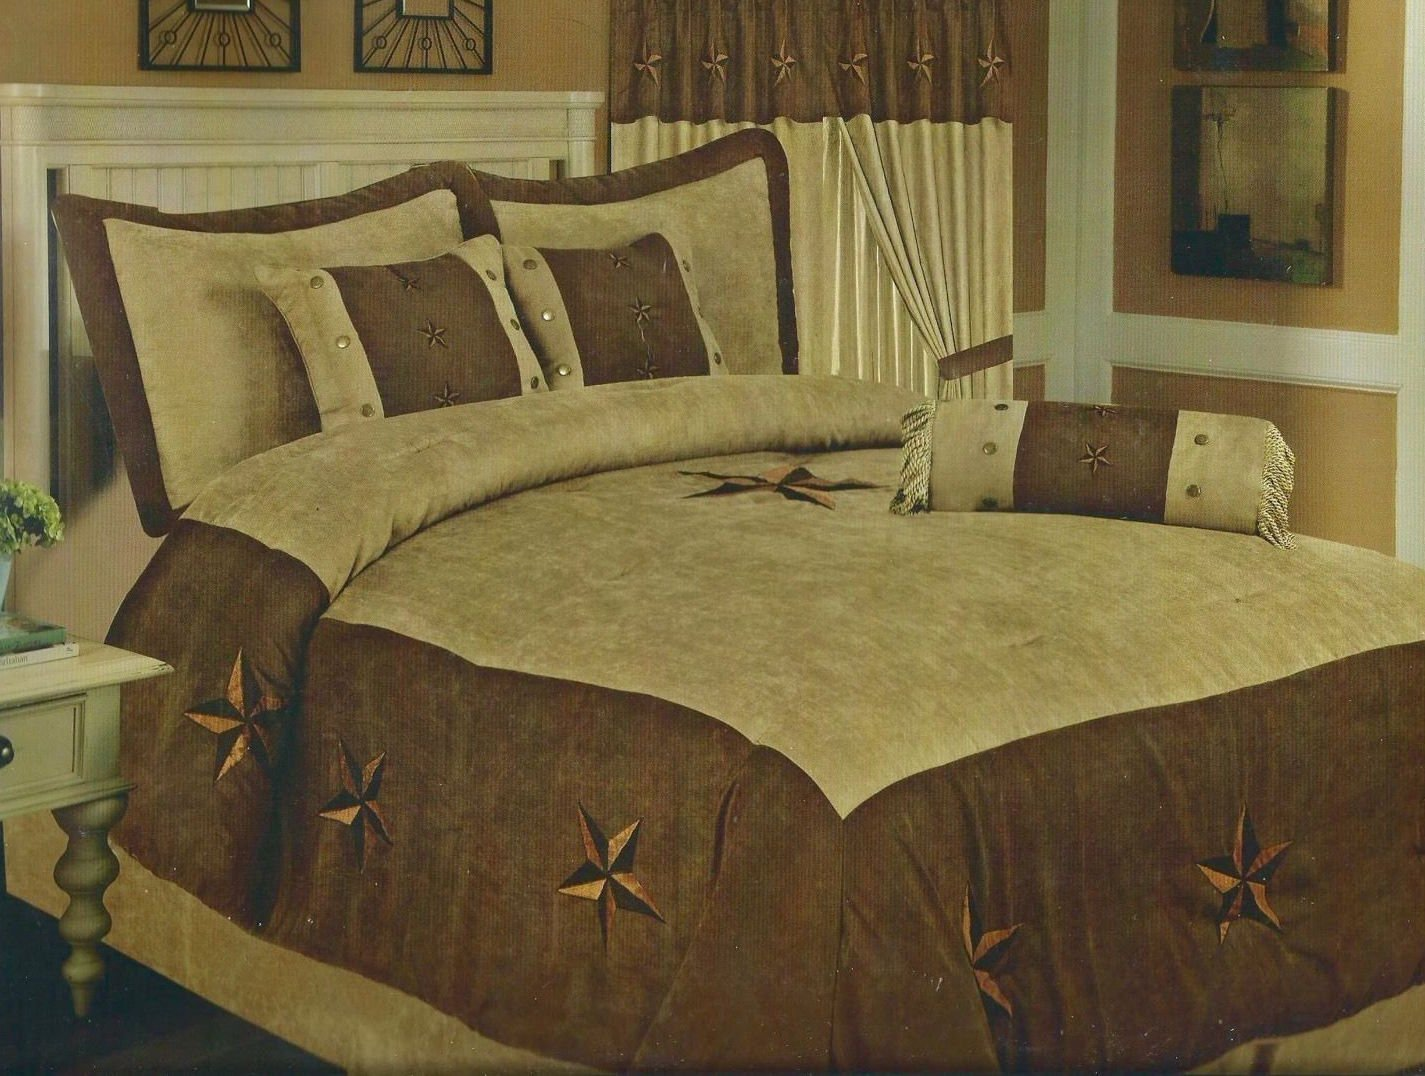 set x microsuede bedding brown home star com sets dp pieces chezmoi oversized collection comforter queen embroidery western amazon coffee design